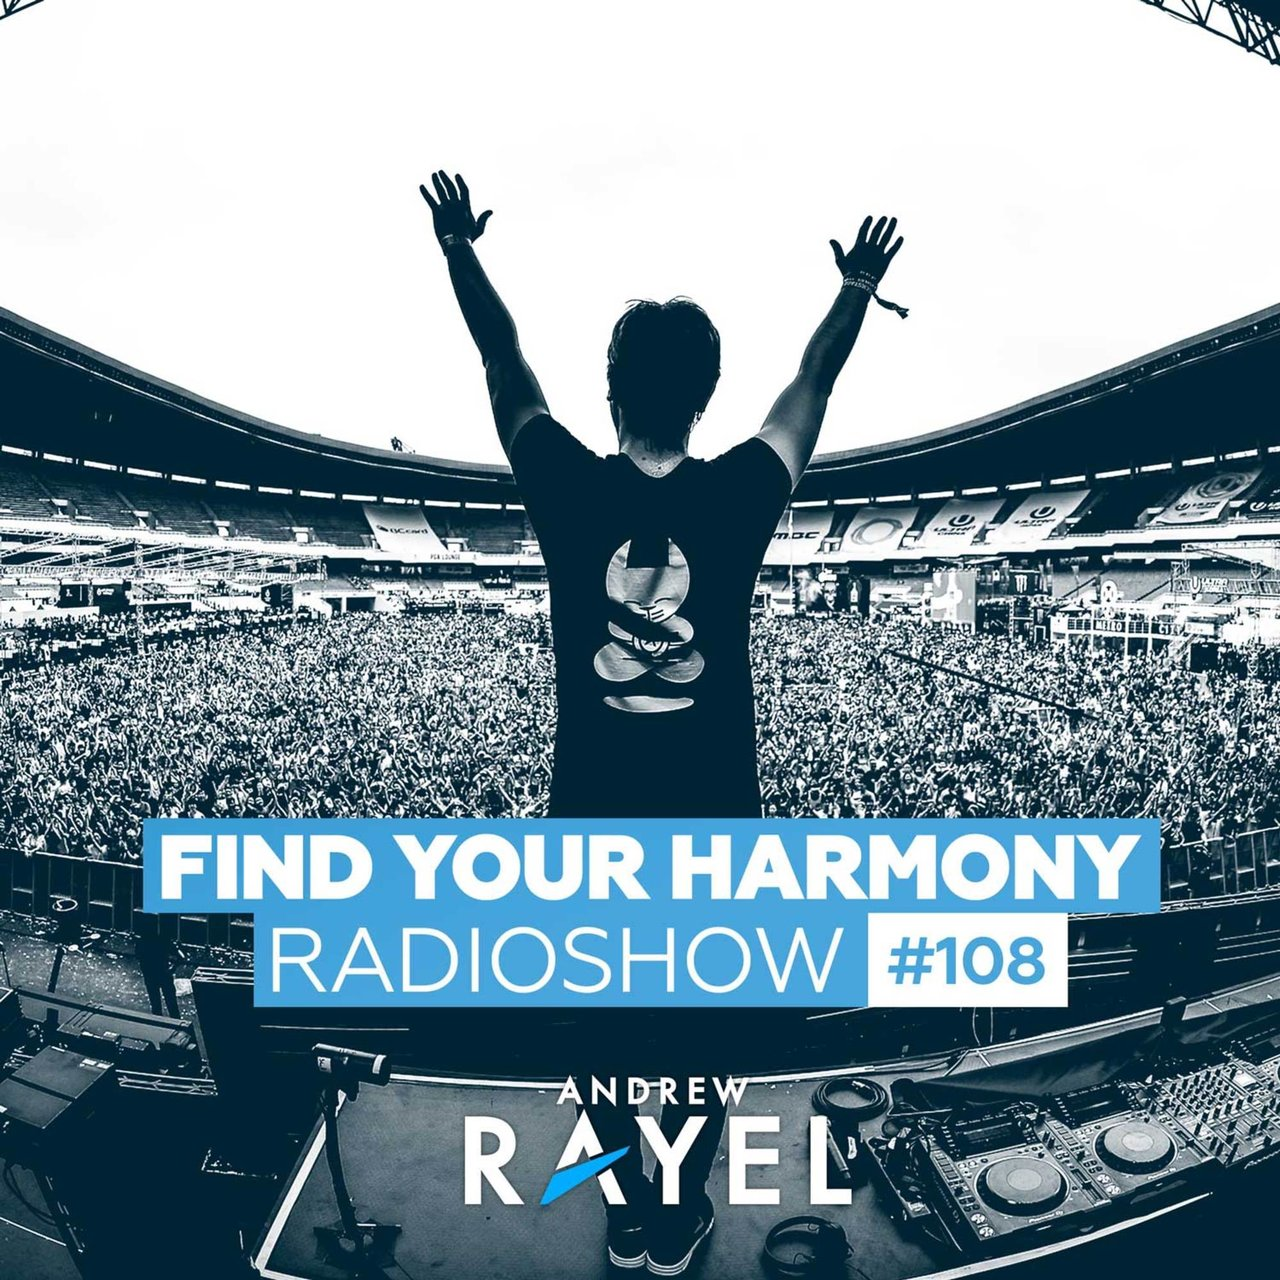 Find Your Harmony Radioshow #108